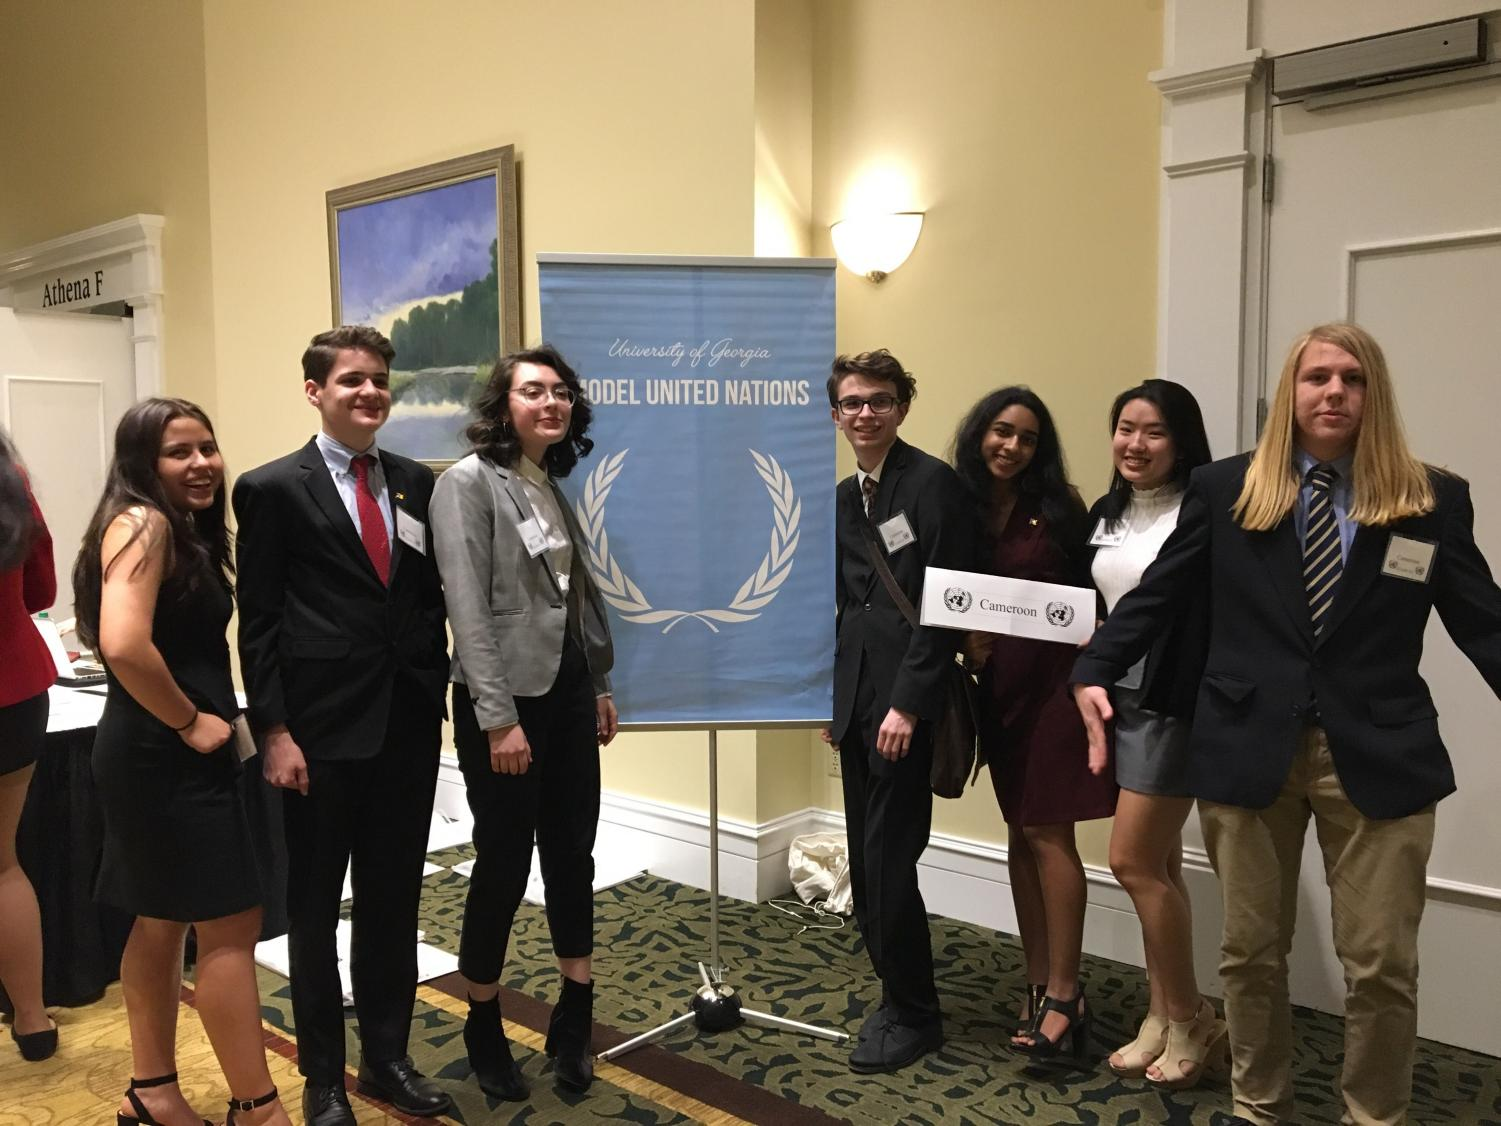 Chamblee students attending Model UN. (Left to right: Victoria Ordonez, Foster Cowan, Ashley Veazey, Carson Ankeny, Shrika Madivanan, Amy Lin, and Nick Markiewicz.)